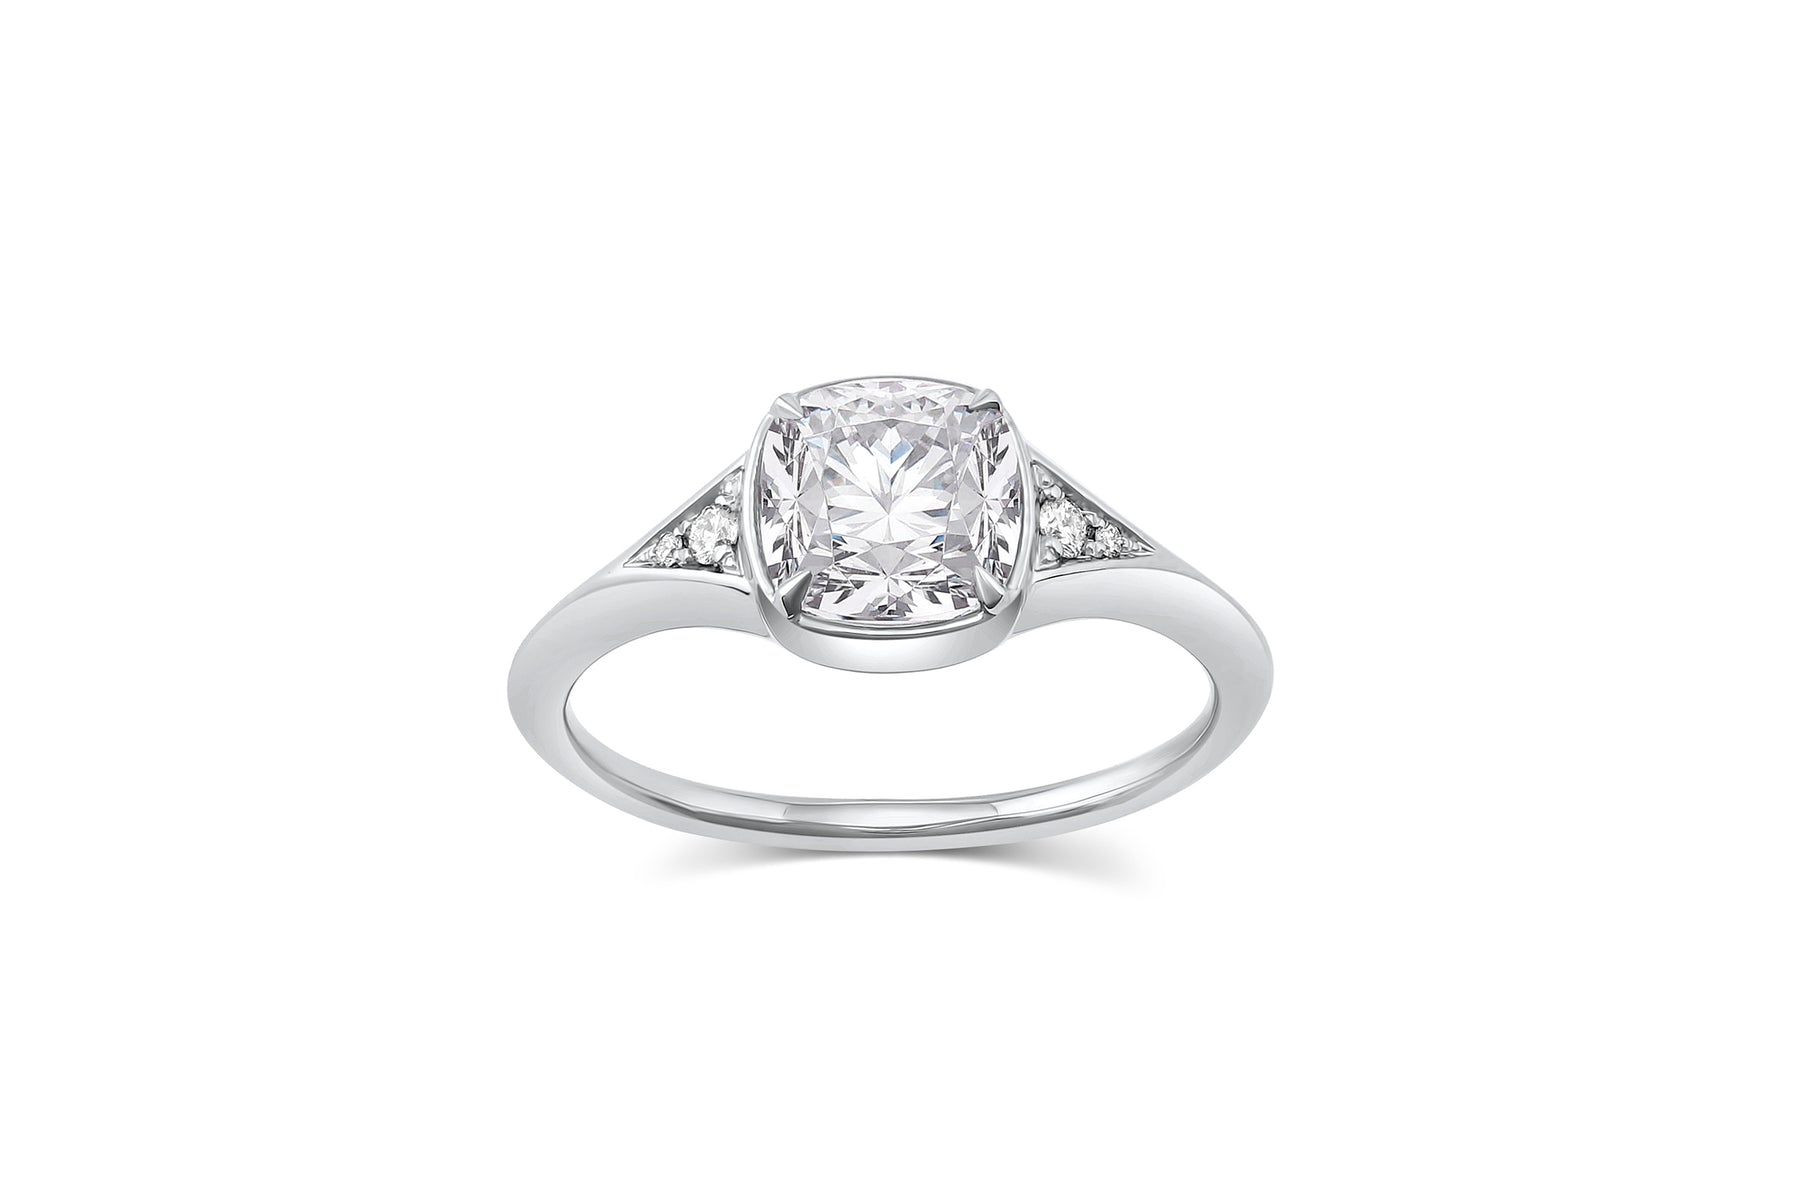 Diamond Engagement Ring 10k Gold Illusion Solitaire with Accents Single .12ctw